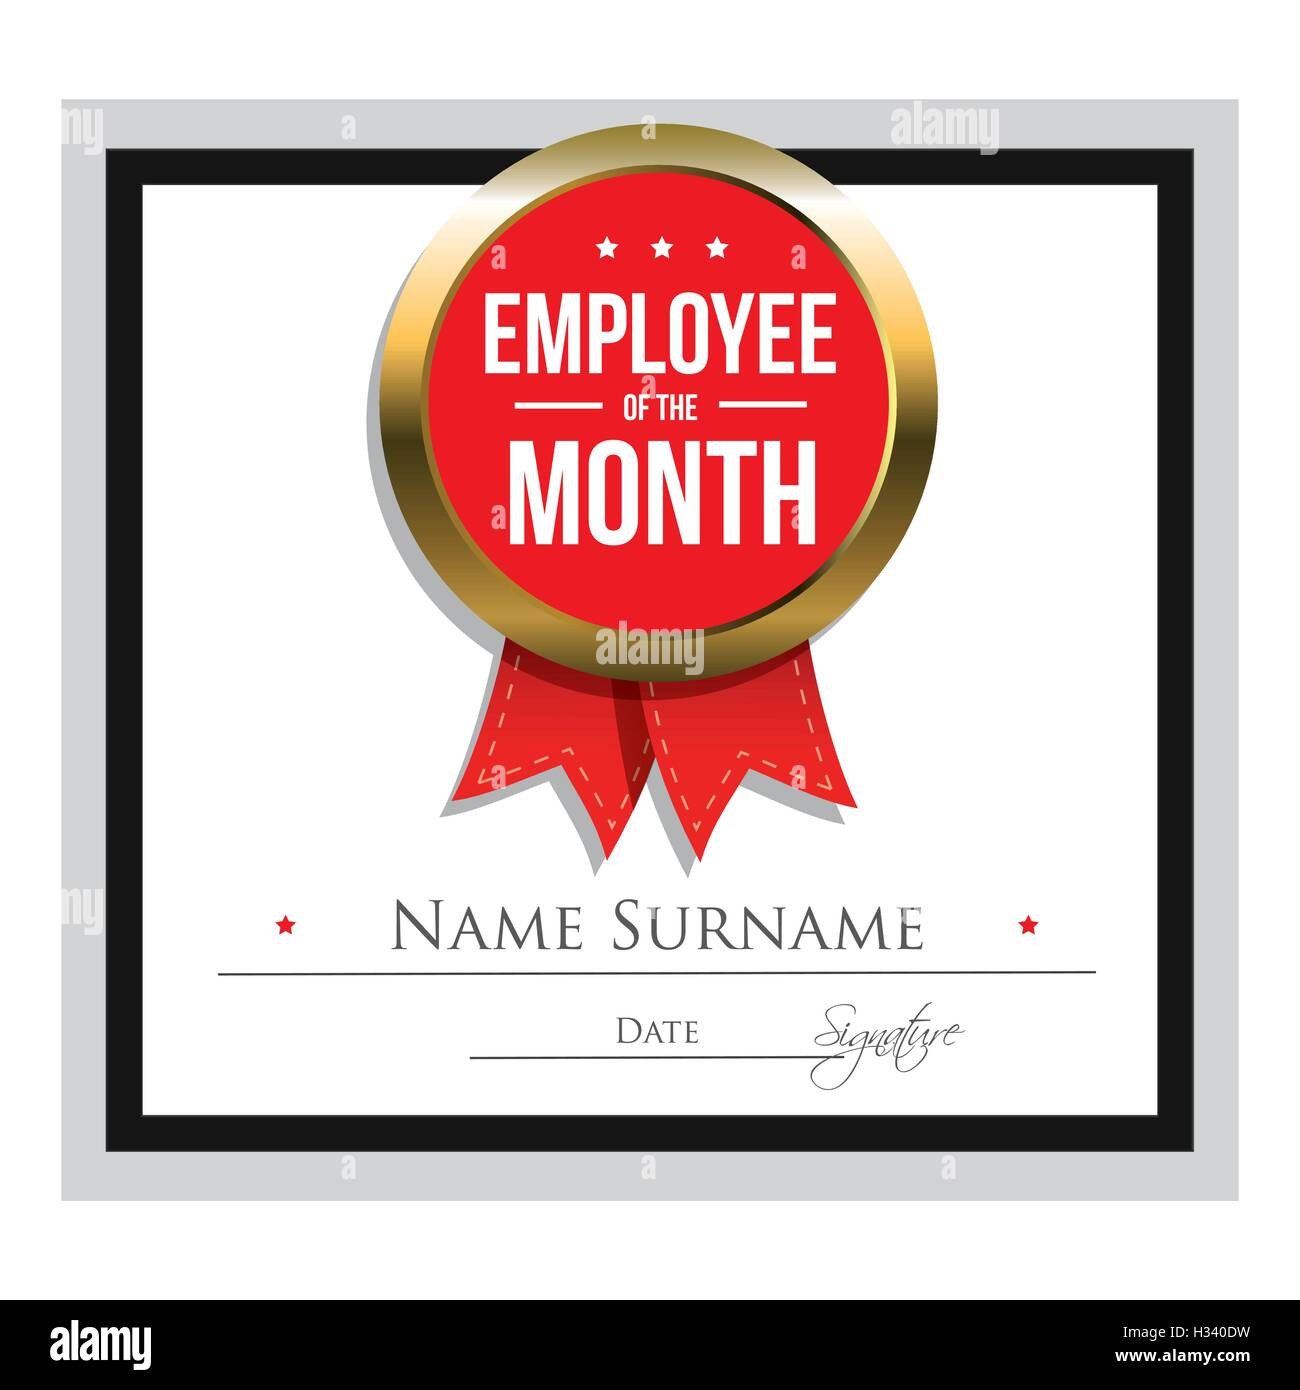 Employee of the month certificate template stock vector art employee of the month certificate template 1betcityfo Images